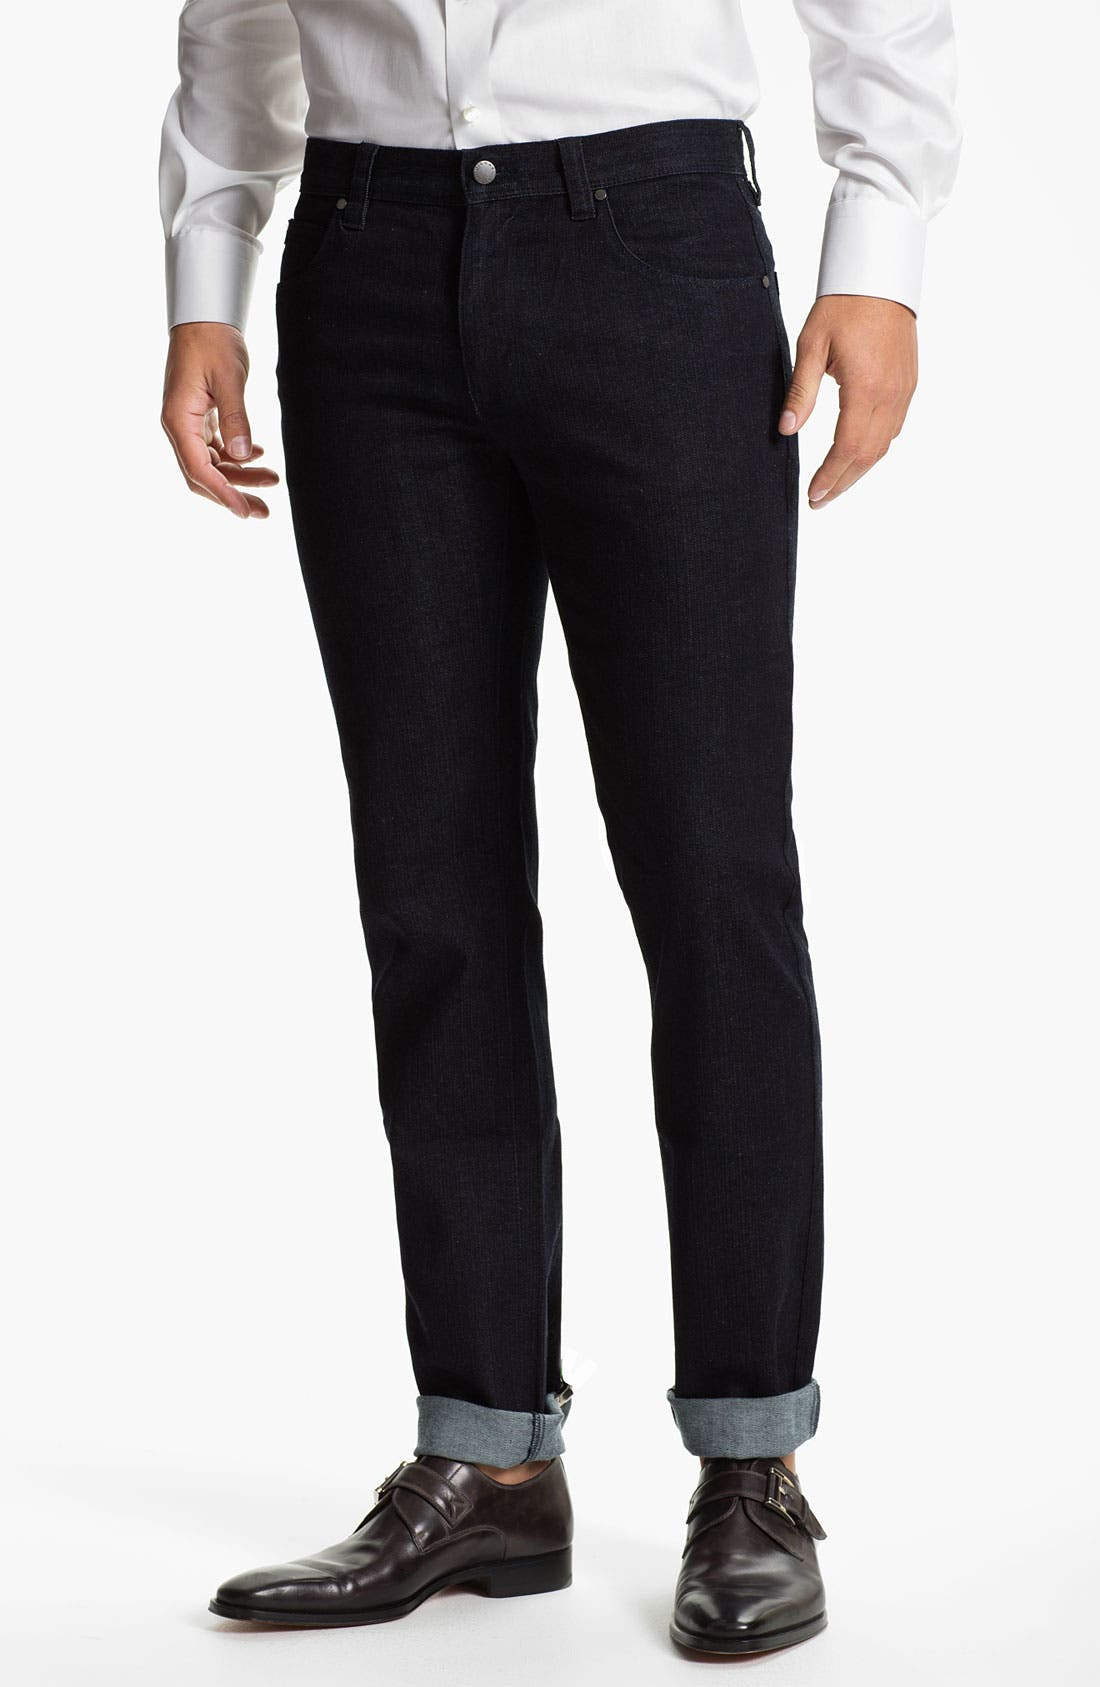 Alternate Image 1 Selected - Michael Kors Straight Leg Jeans (Dark Rinse)